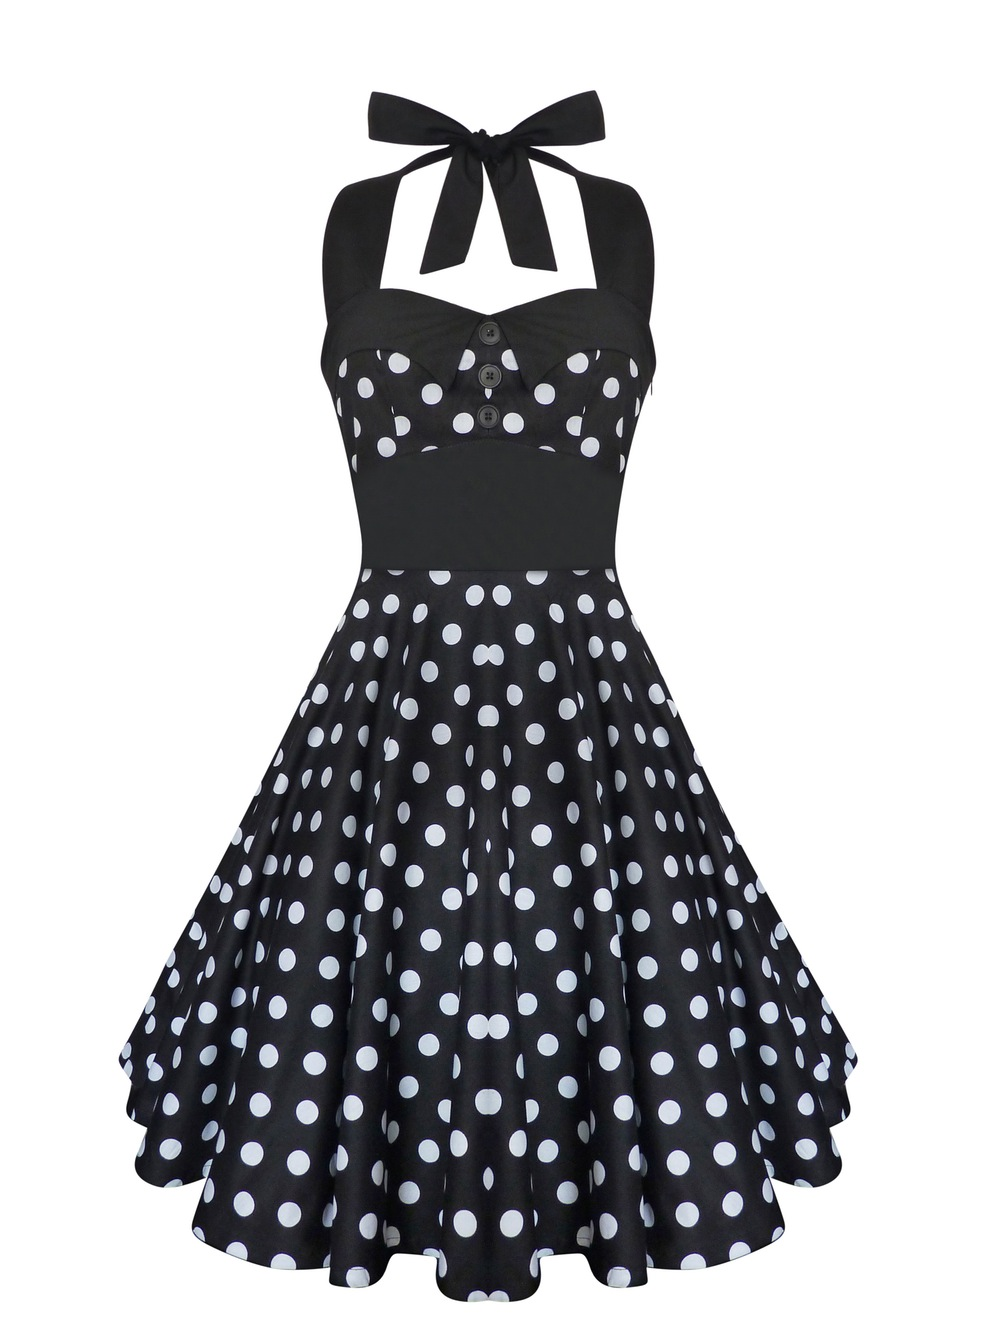 classic vintage inspired polka dots Dress